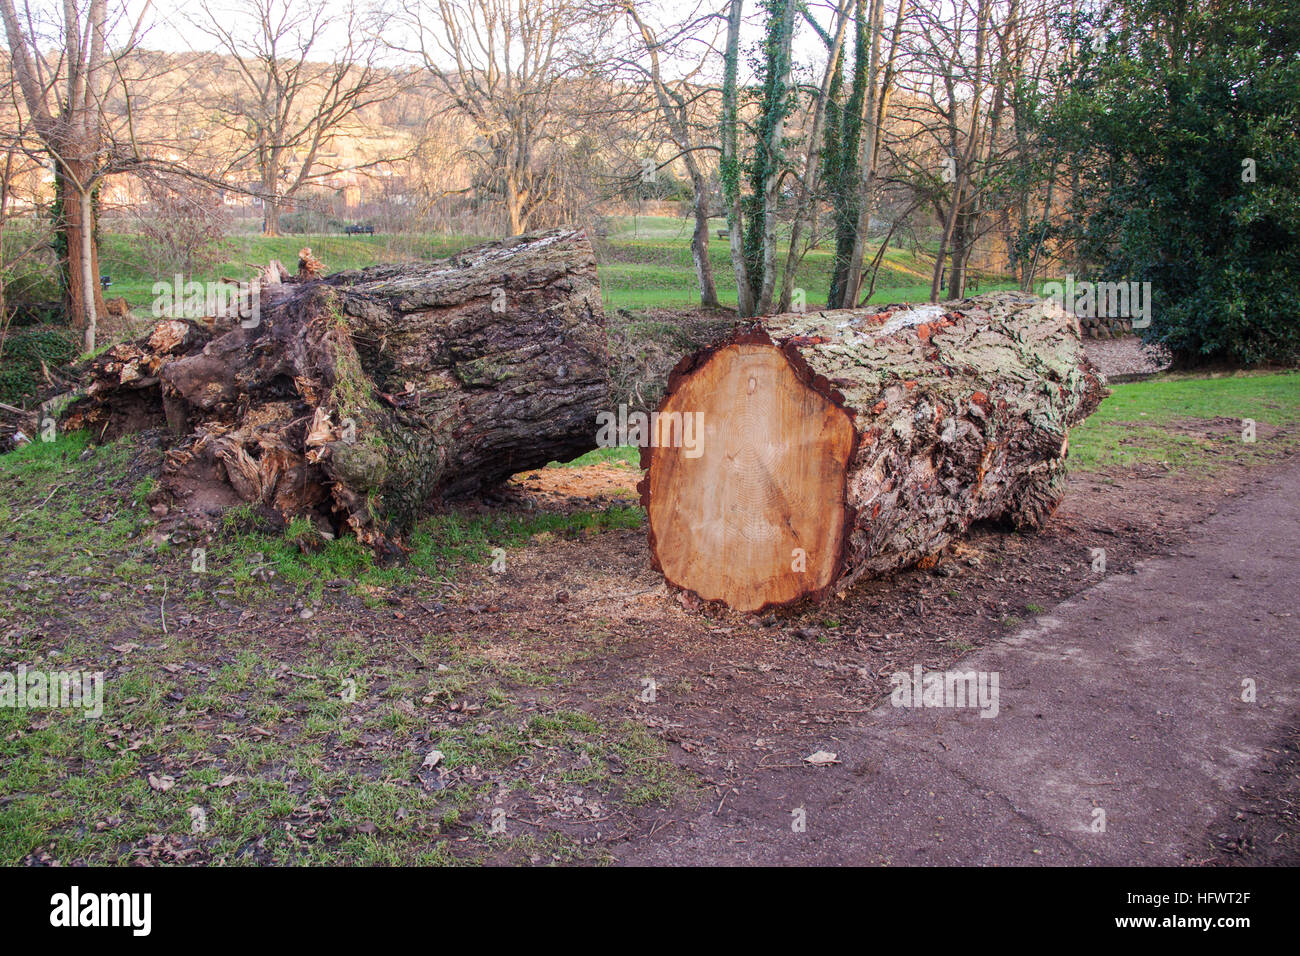 A large Scots Pine tree which fell onto a foot path in the Byes, Sidmouth, cut into sections for removal. - Stock Image